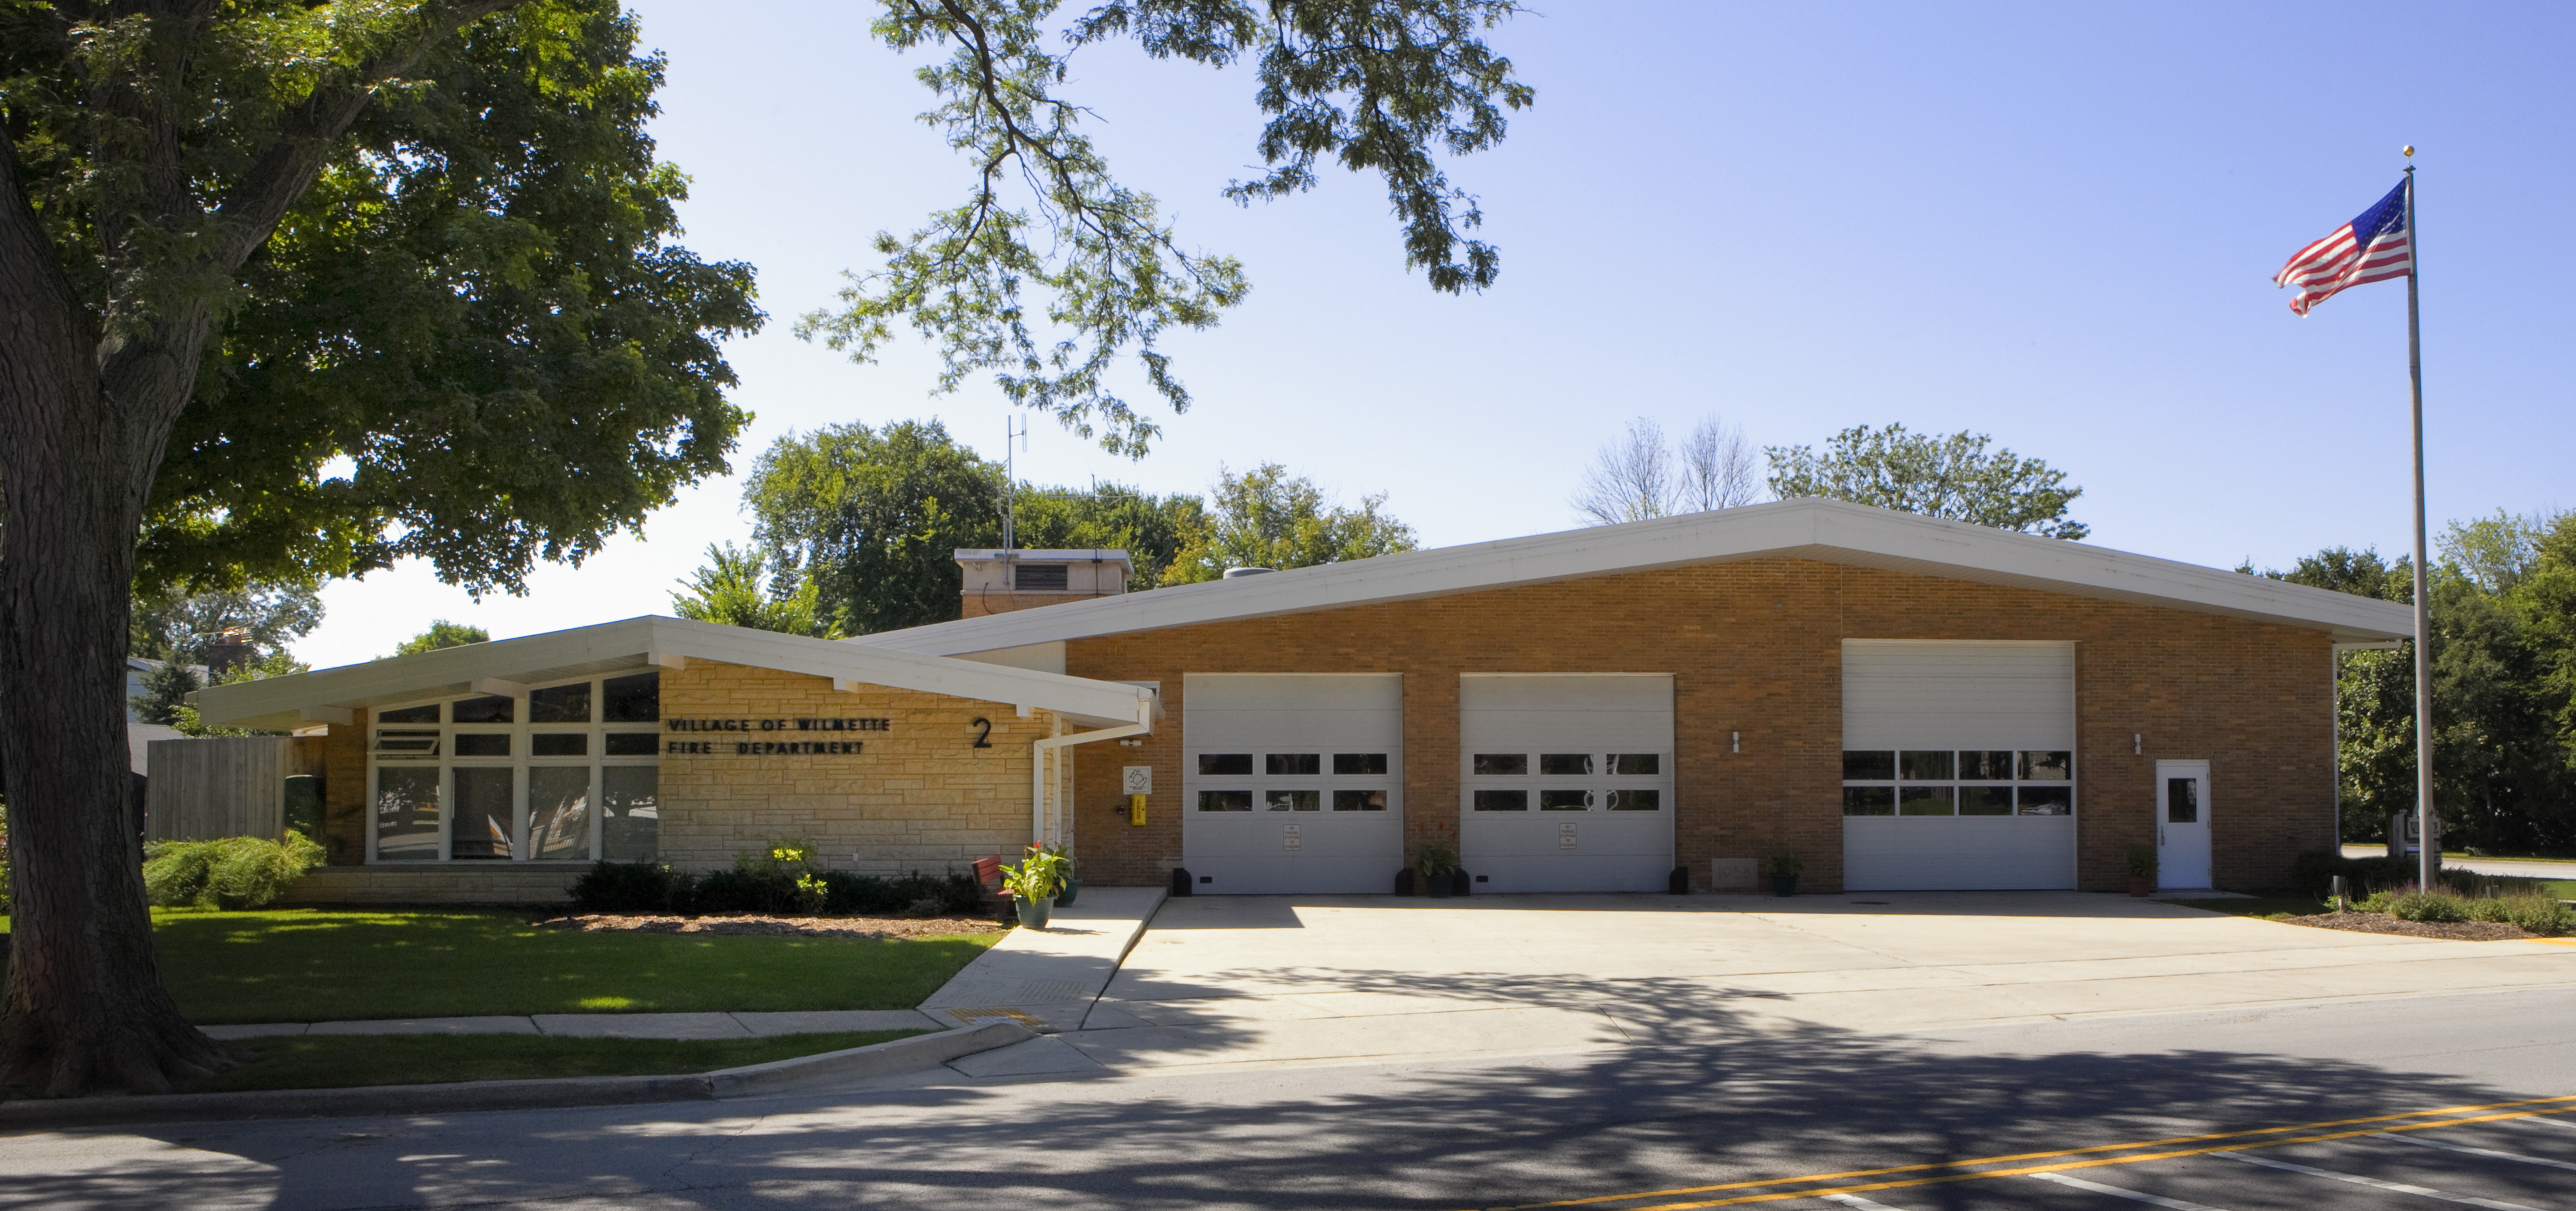 Wilmette Fire Department Station 27